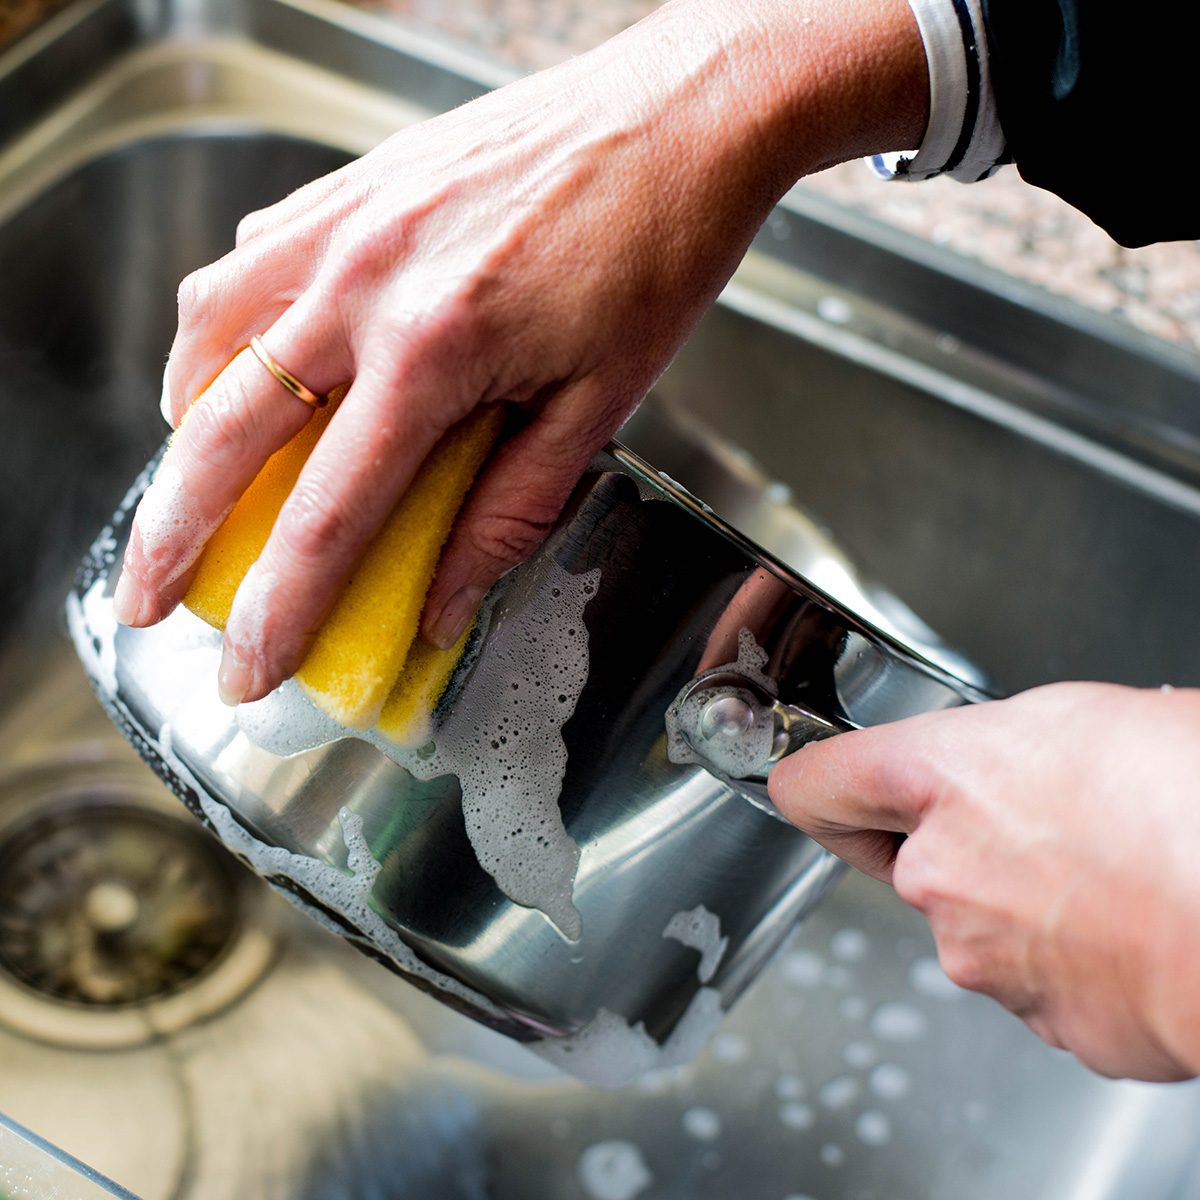 Woman Washing Up a Stainless Steel Saucepan in the Kitchen Sink After Cooking